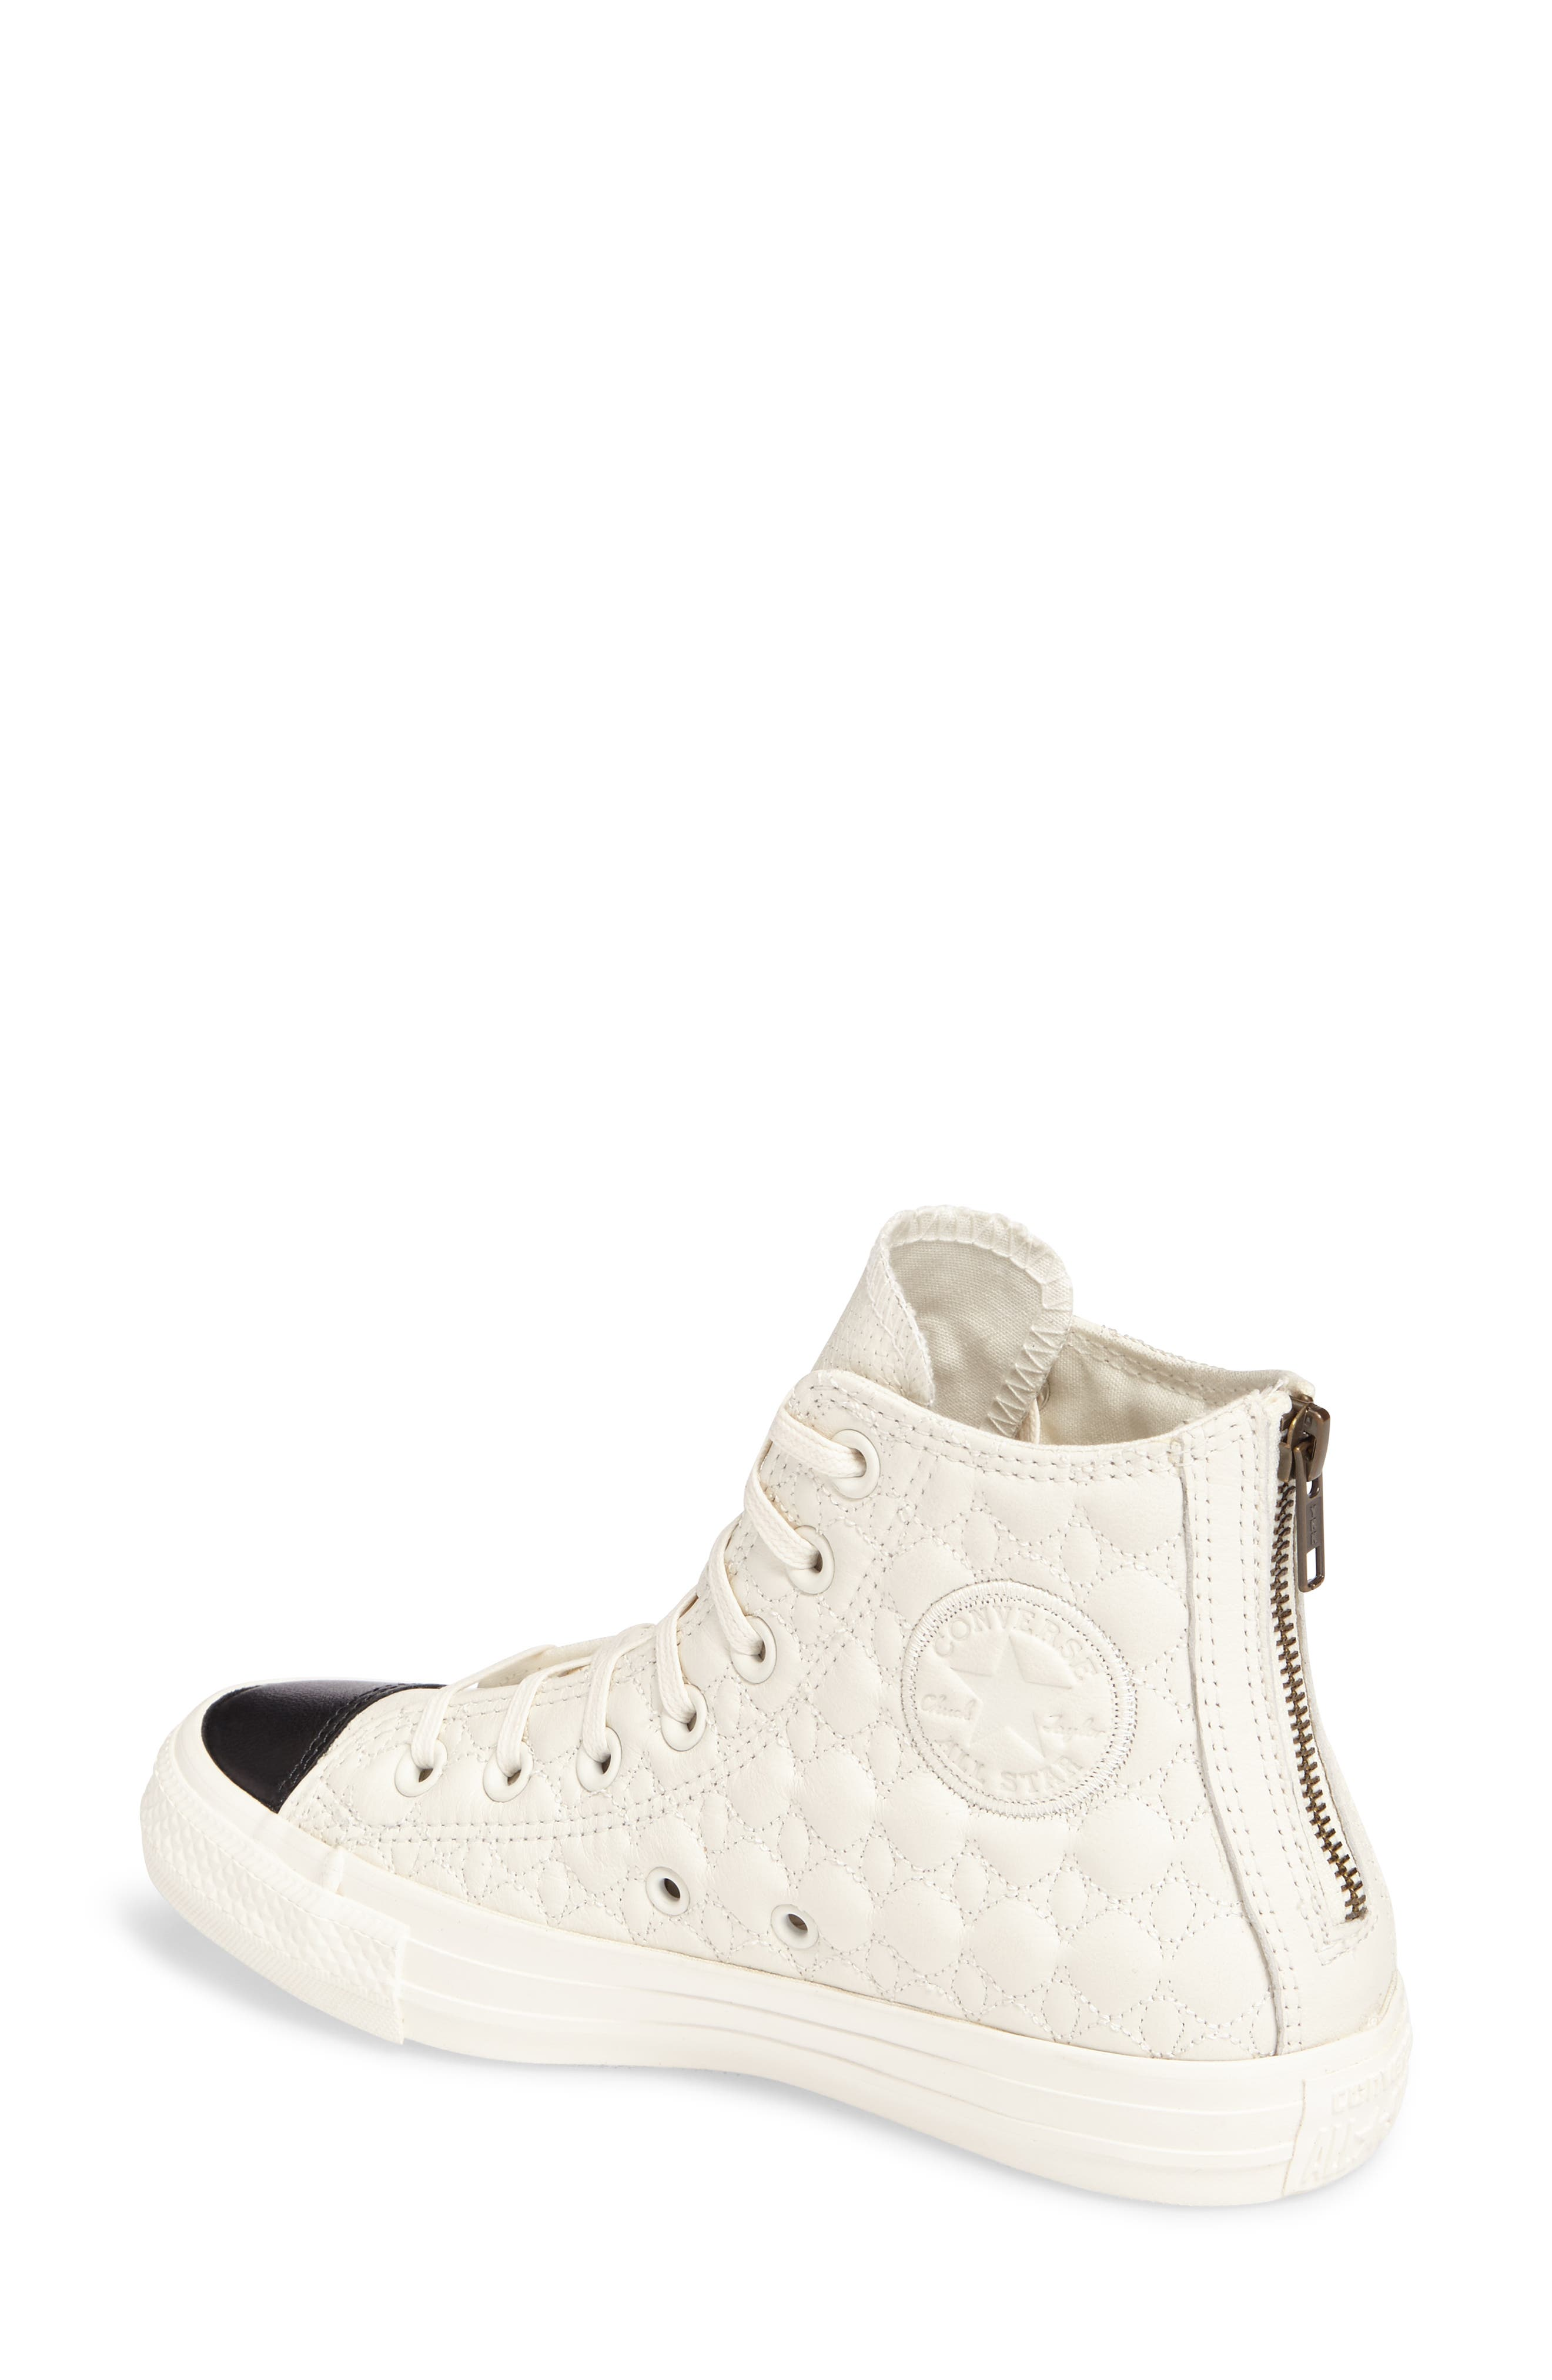 All Star<sup>®</sup> Quilted High Top Sneaker,                             Alternate thumbnail 2, color,